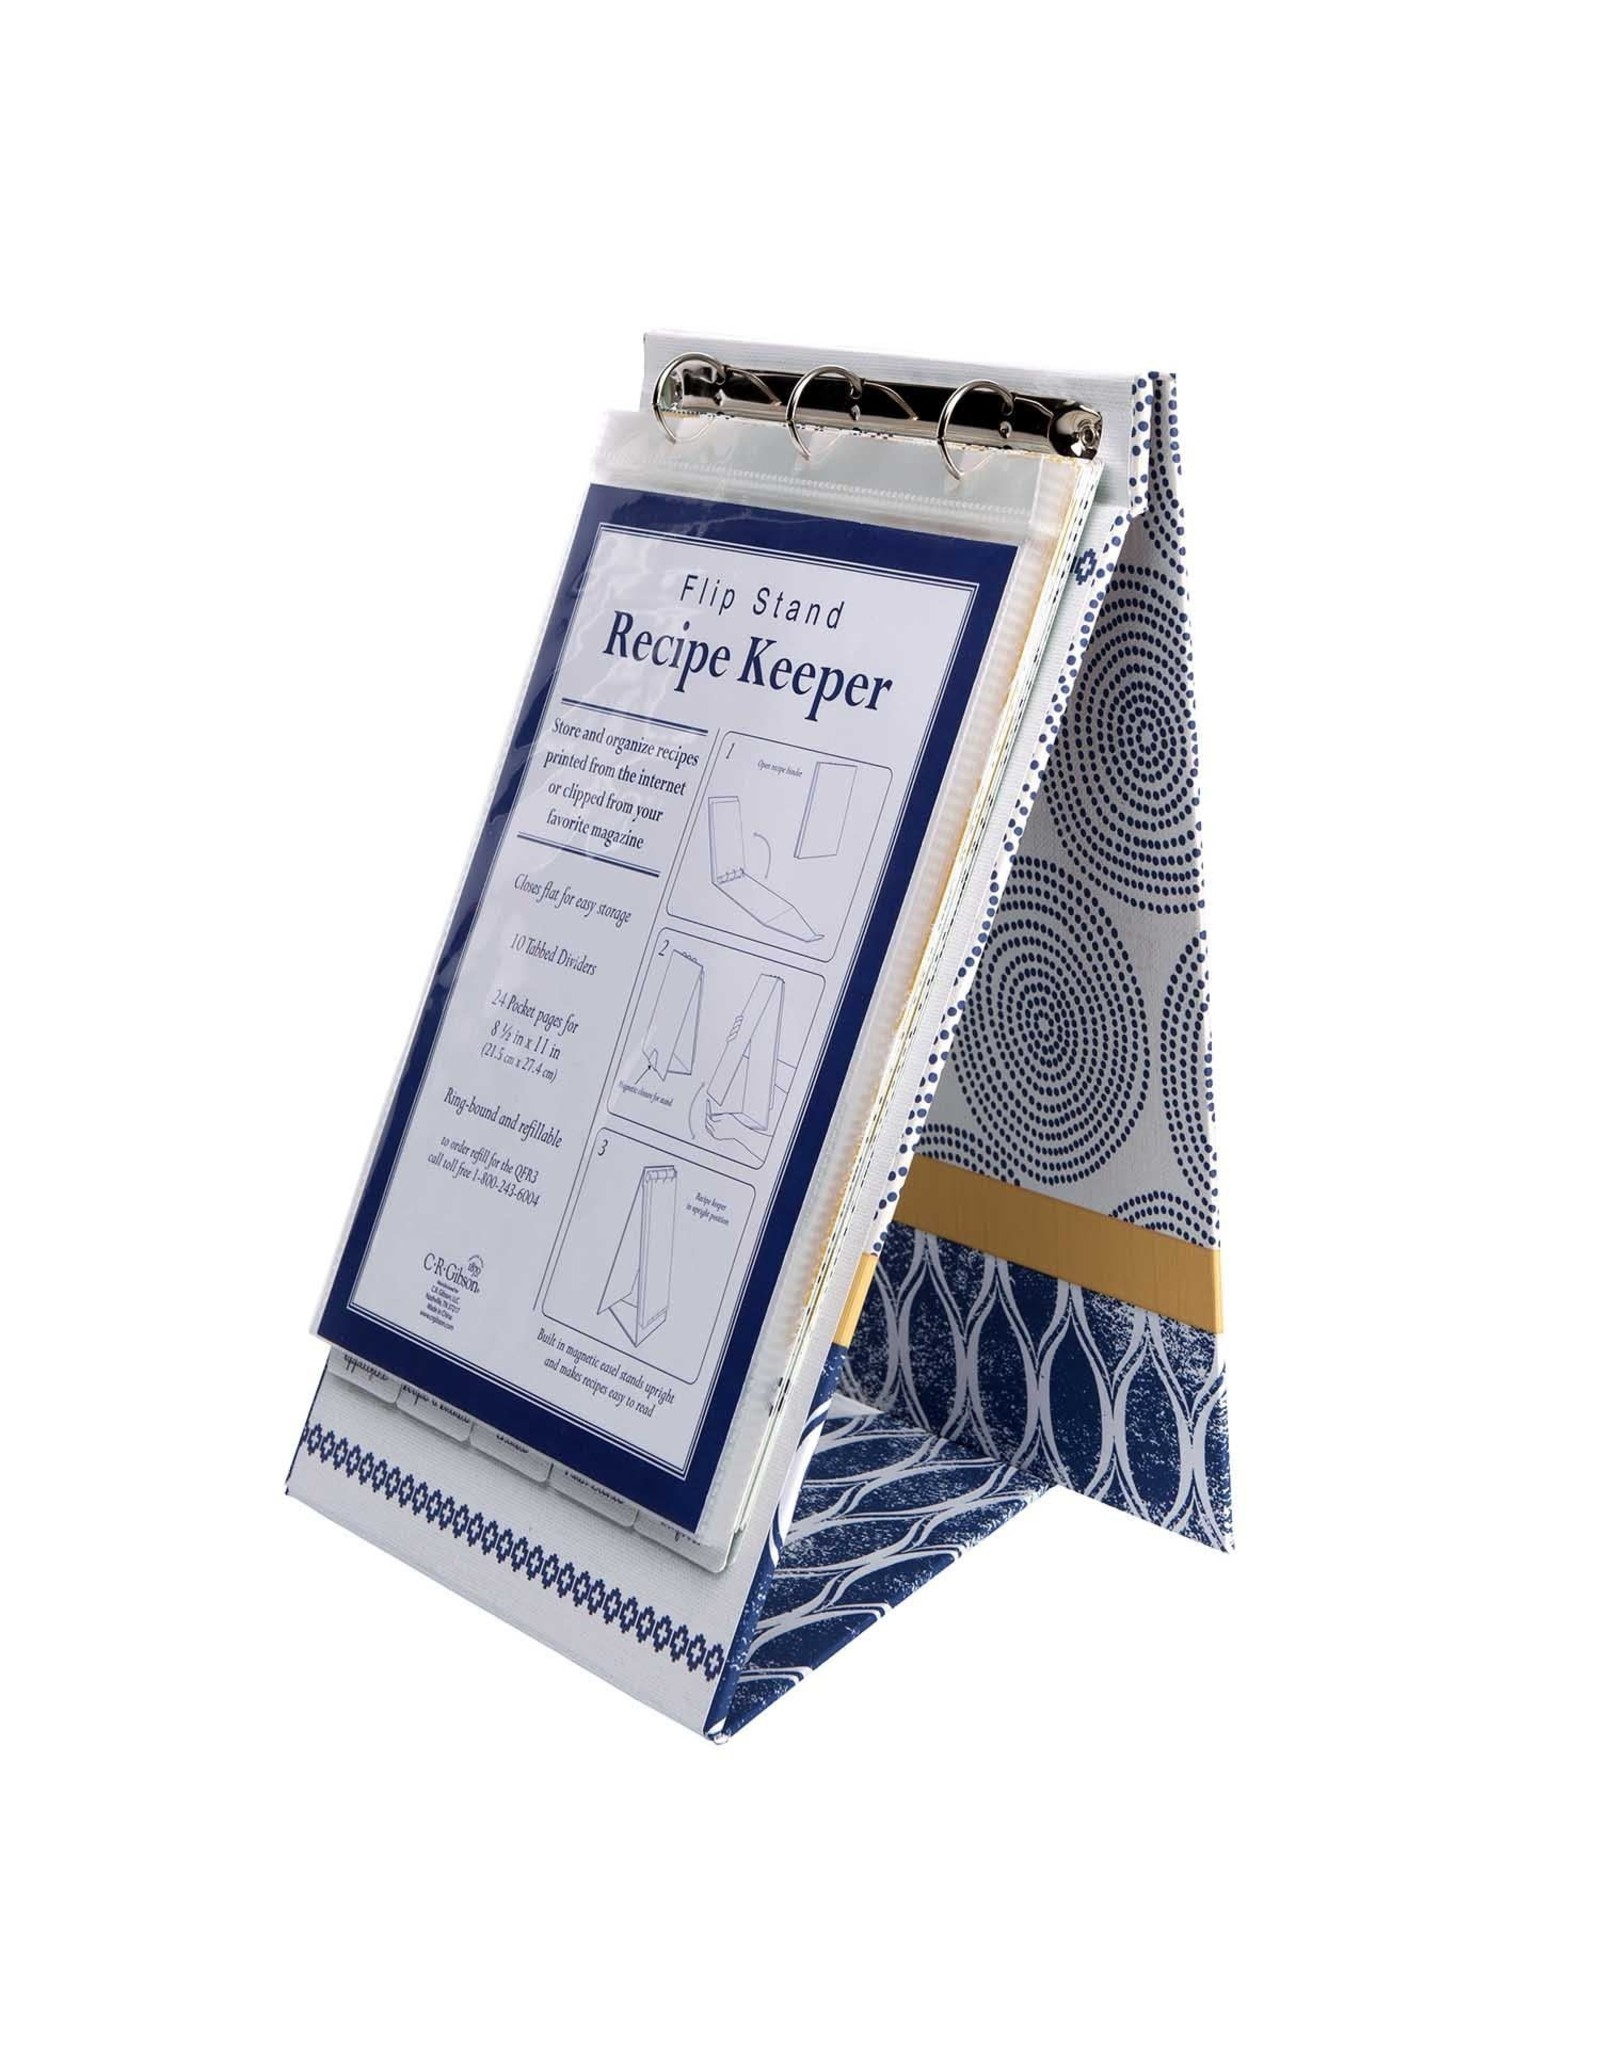 CR Gibson Art Of Cooking Recipe Keeper Flip Stand